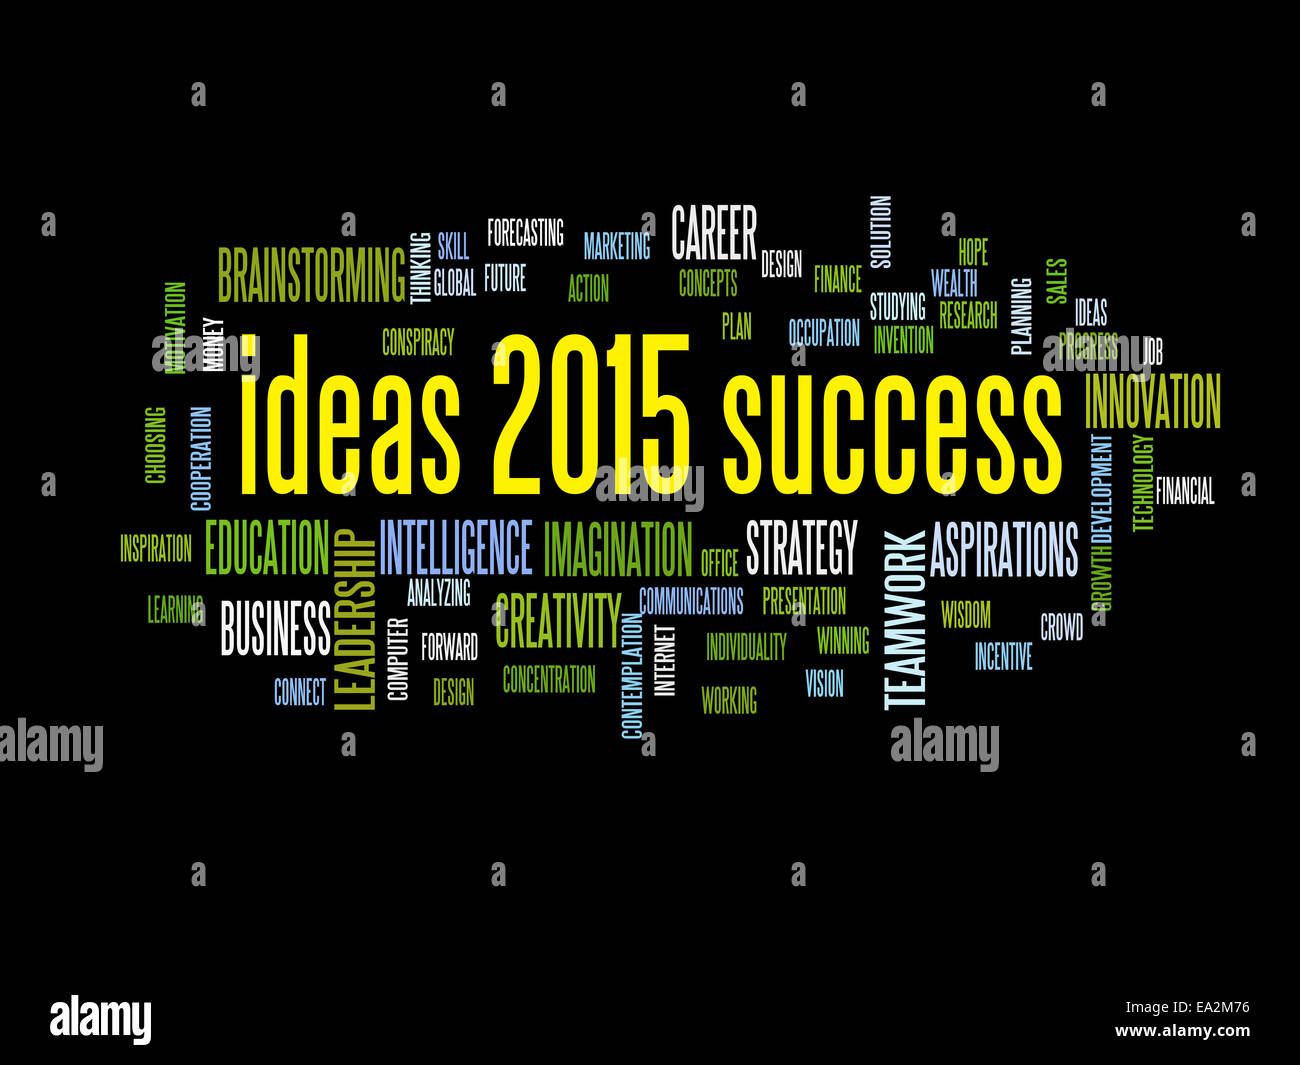 ideas of success 2015 word cloud - Stock Image